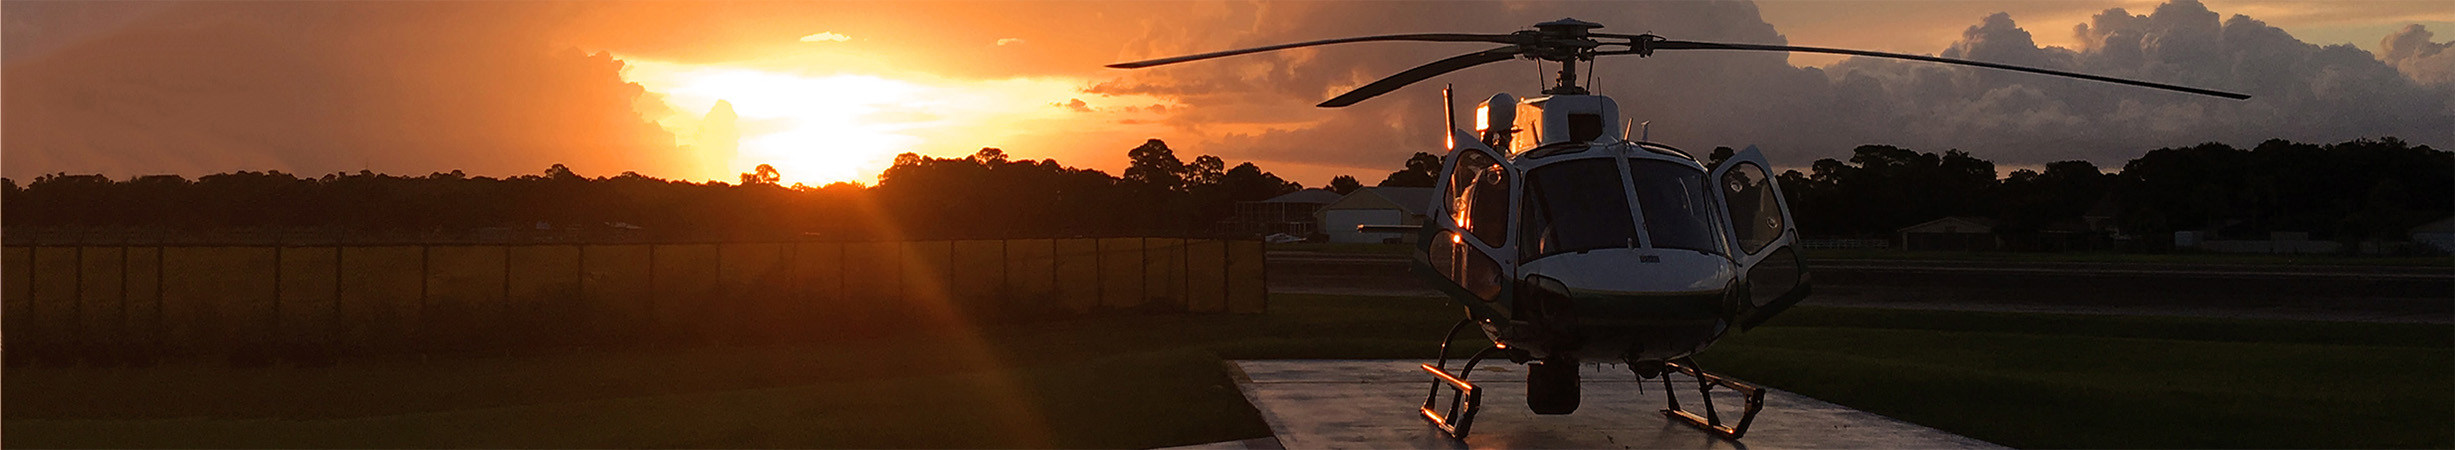 HeaderIMG-HelicopterSunset